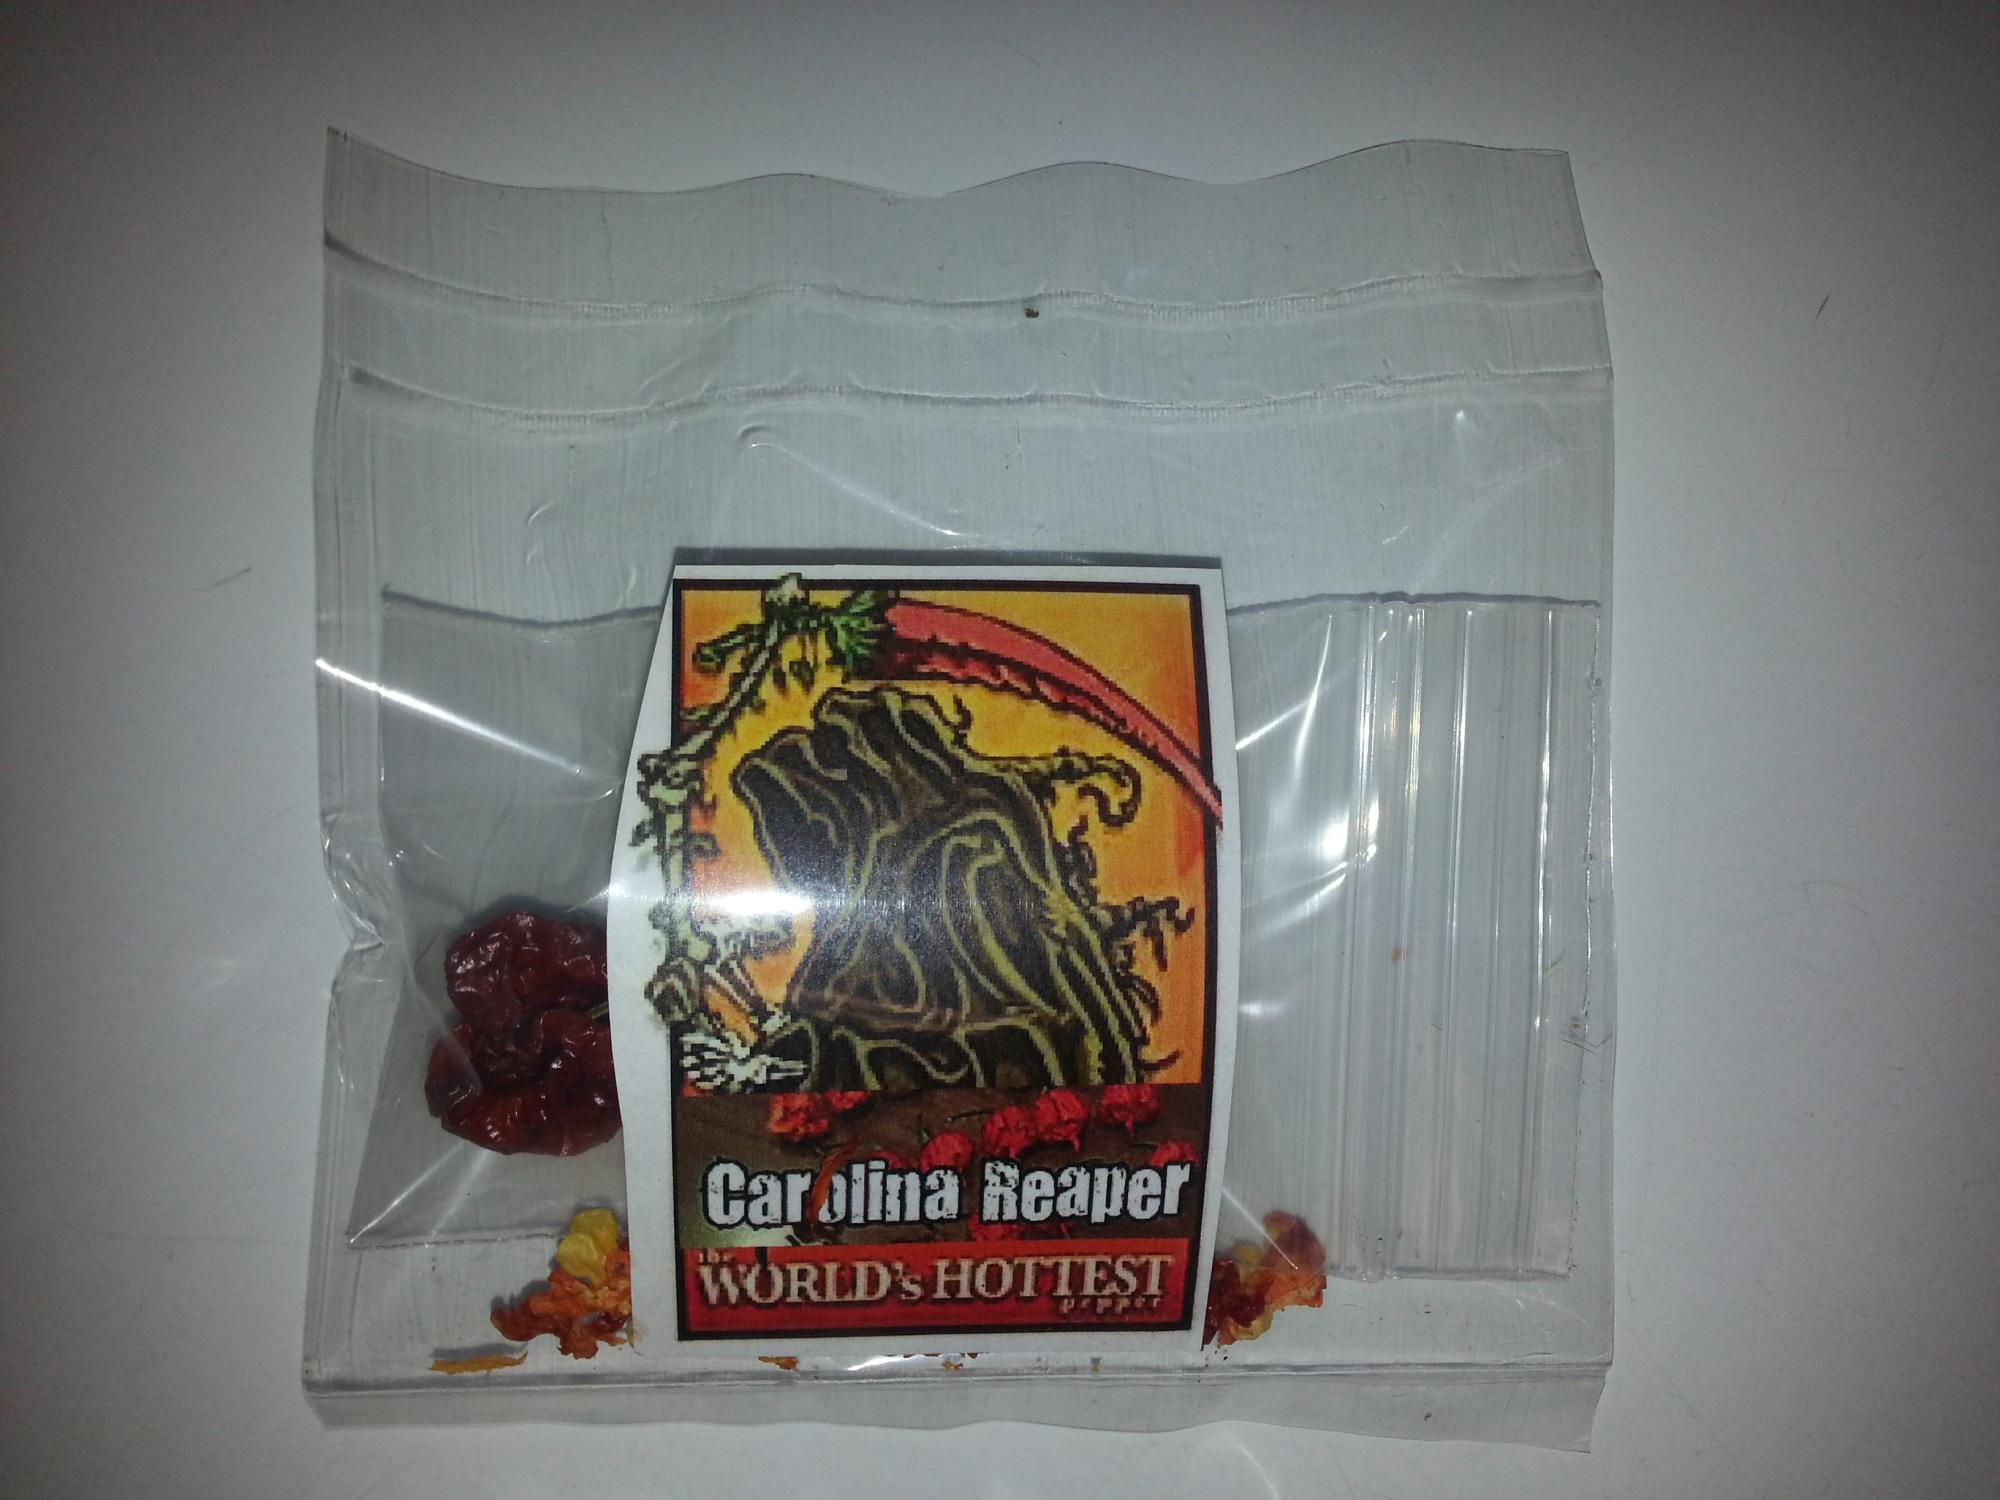 buy Carolina reaper seeds